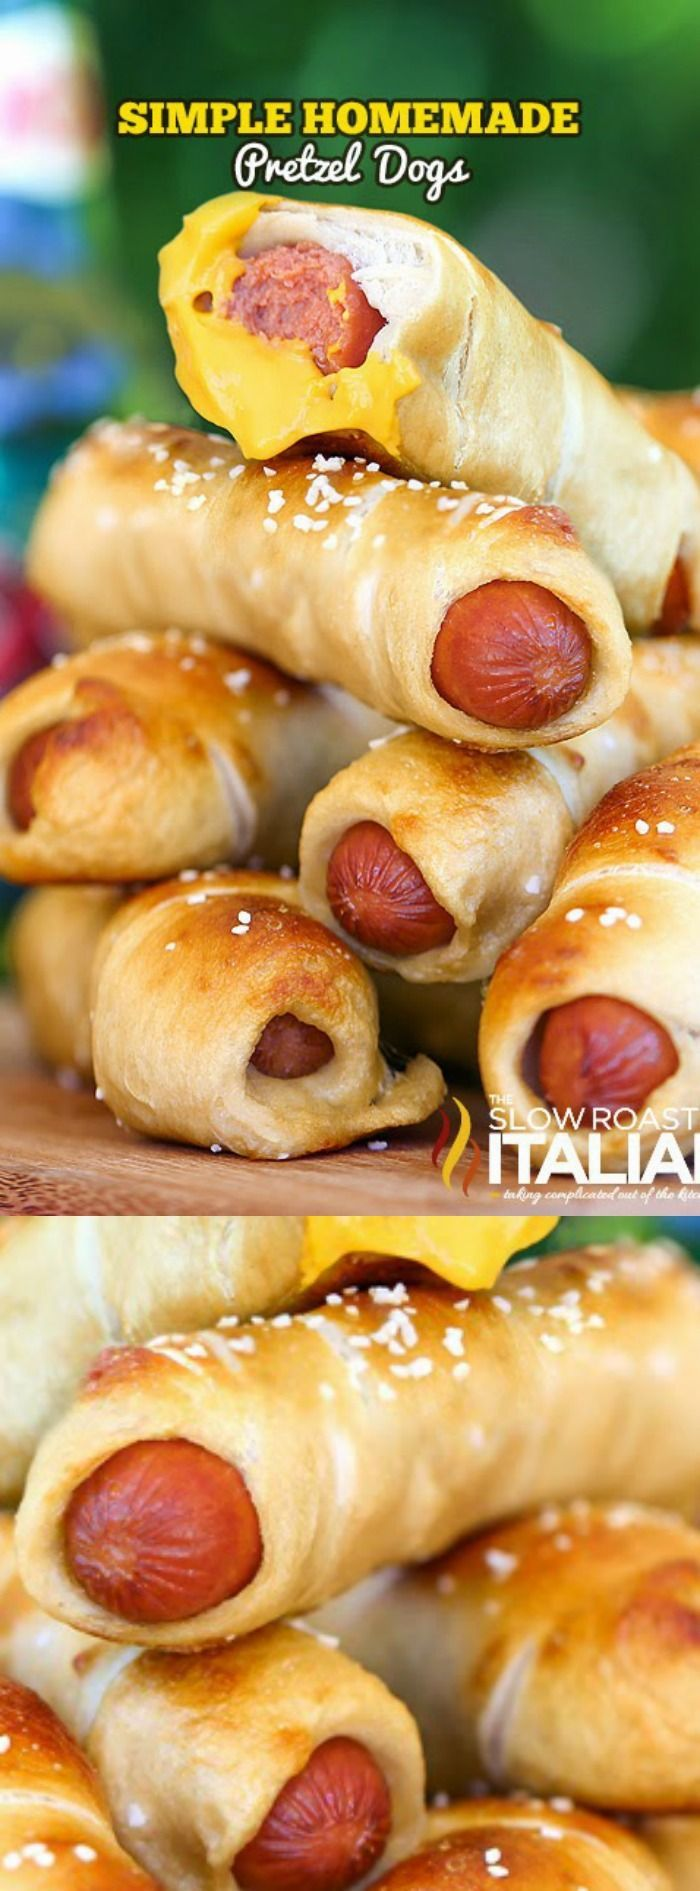 These Simple Homemade Pretzel Dogs from The Slow Roasted Italian are hot dogs that are baked right inside of a soft beer pretzel! They are seriously the tastiest and easiest homemade pretzel dogs you will ever eat!